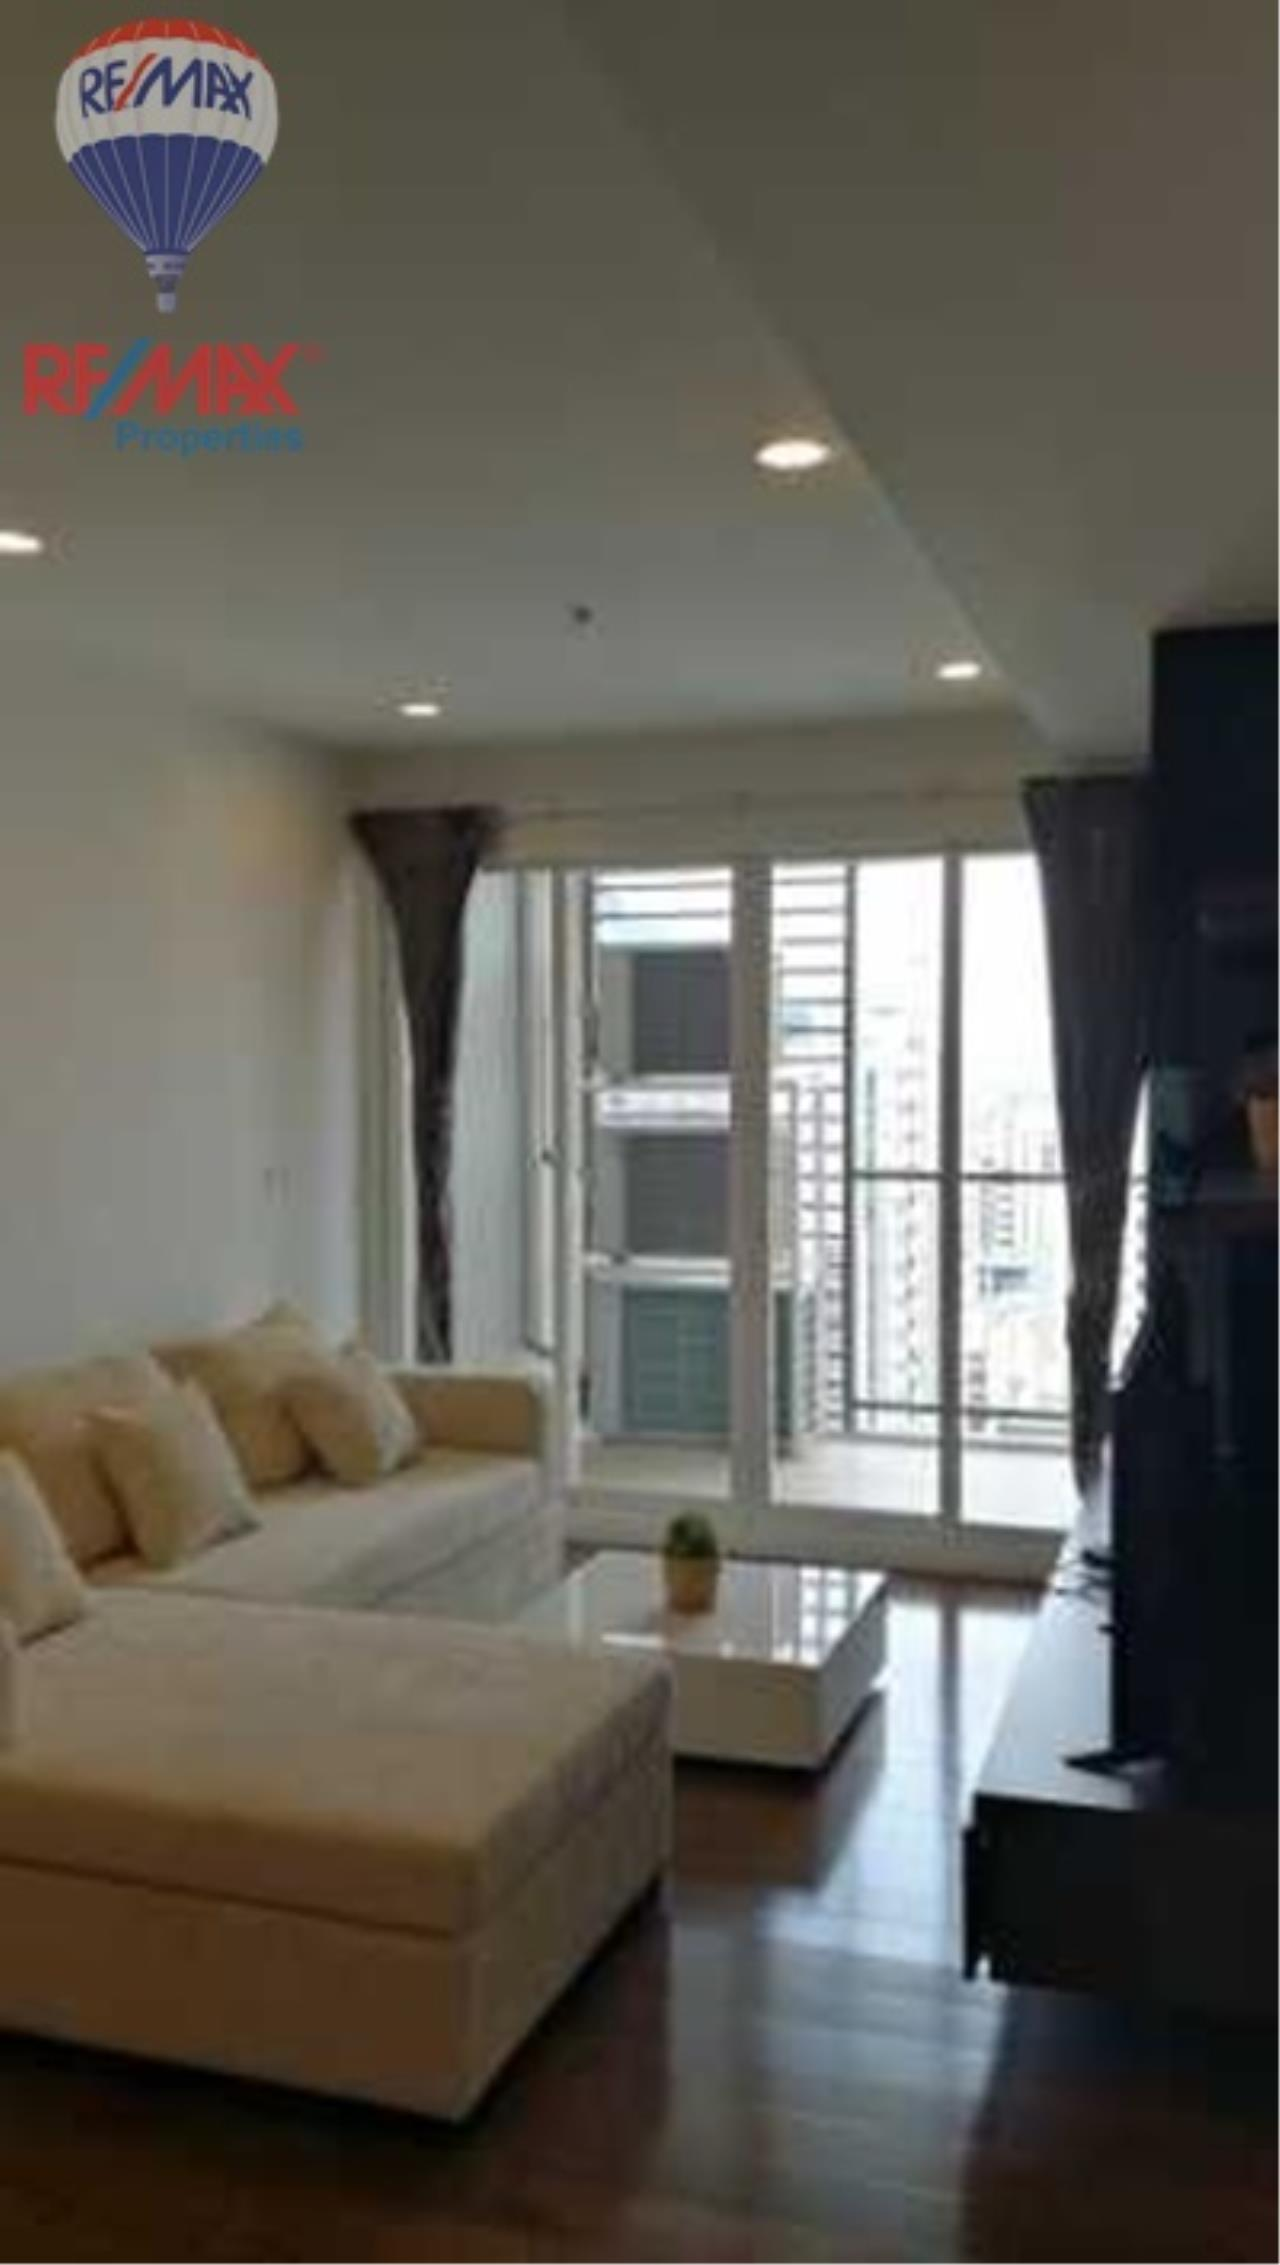 RE/MAX Properties Agency's SALE/RENT 2 BEDROOMS 65.74 SQ.M AT 15 RESIDENCE 6